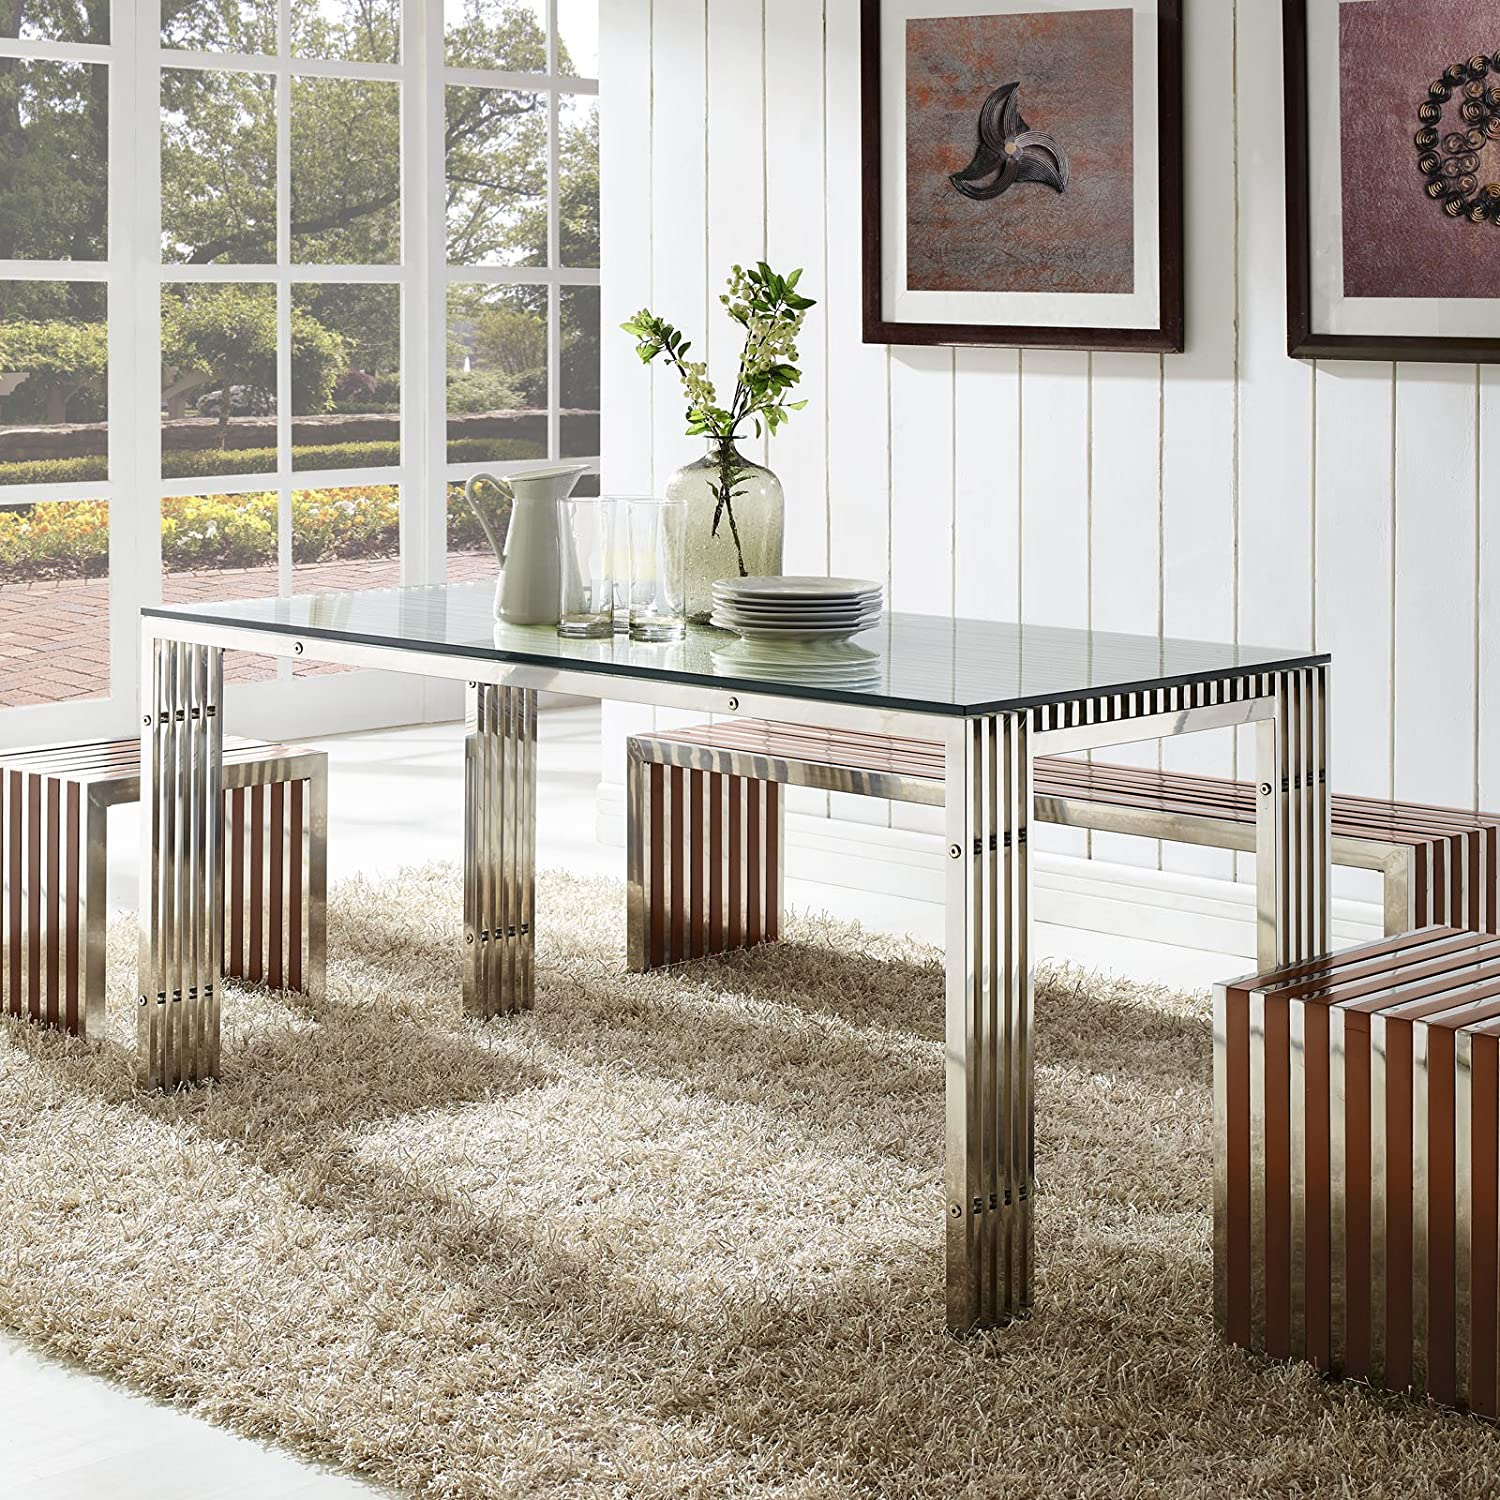 Amazon.com: Modway Gridiron Stainless Steel Dining Table In Silver: Kitchen  U0026 Dining Part 44